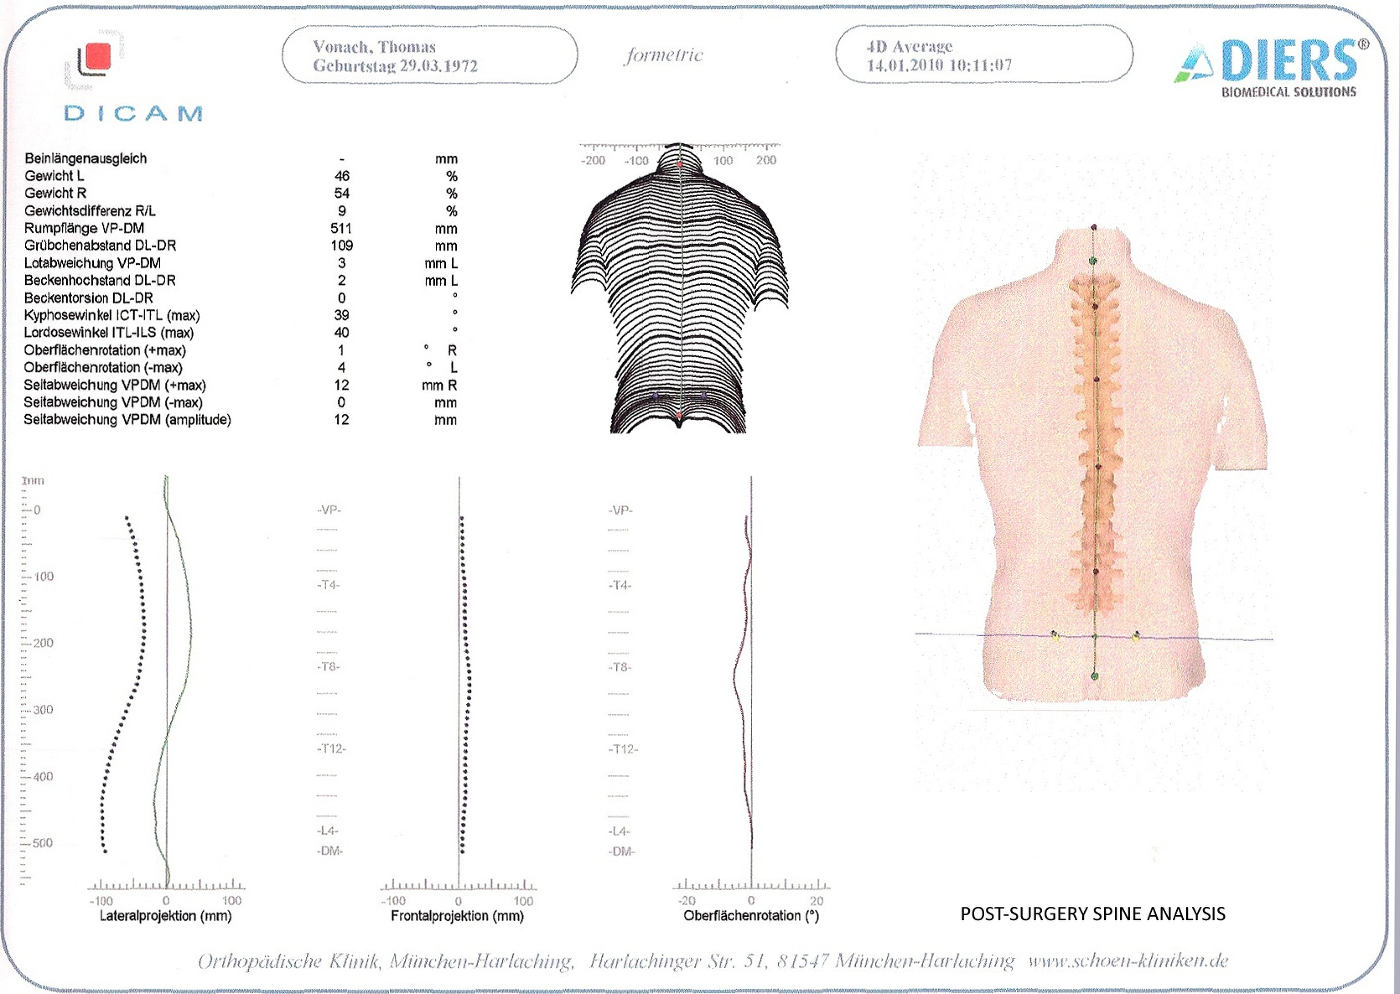 Spine_Details Post Surgery_Thomas J. Vonach.jpg